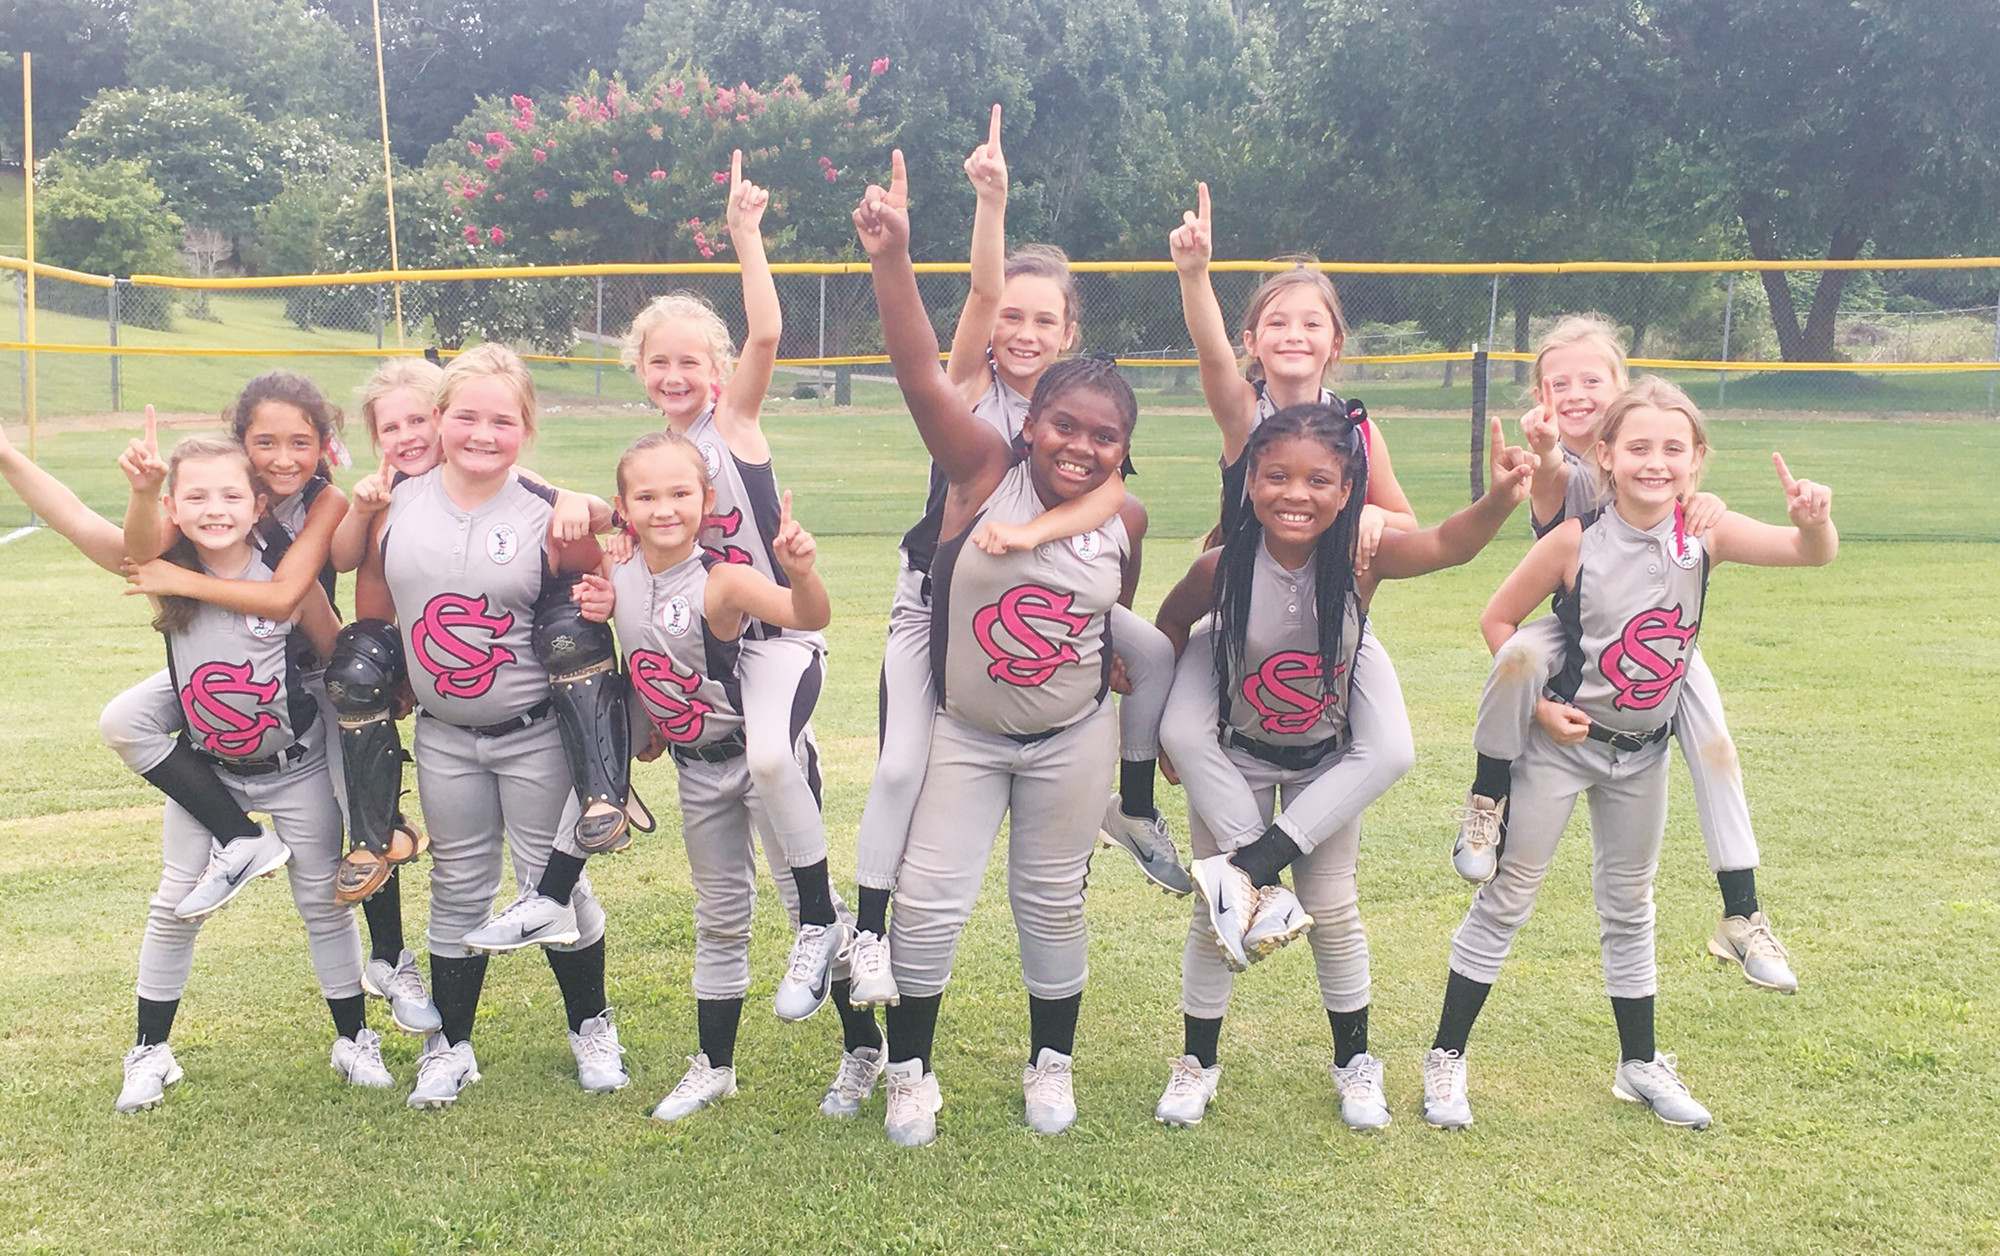 Sumter 7-8 coaches pitch team goes undefeated winning state